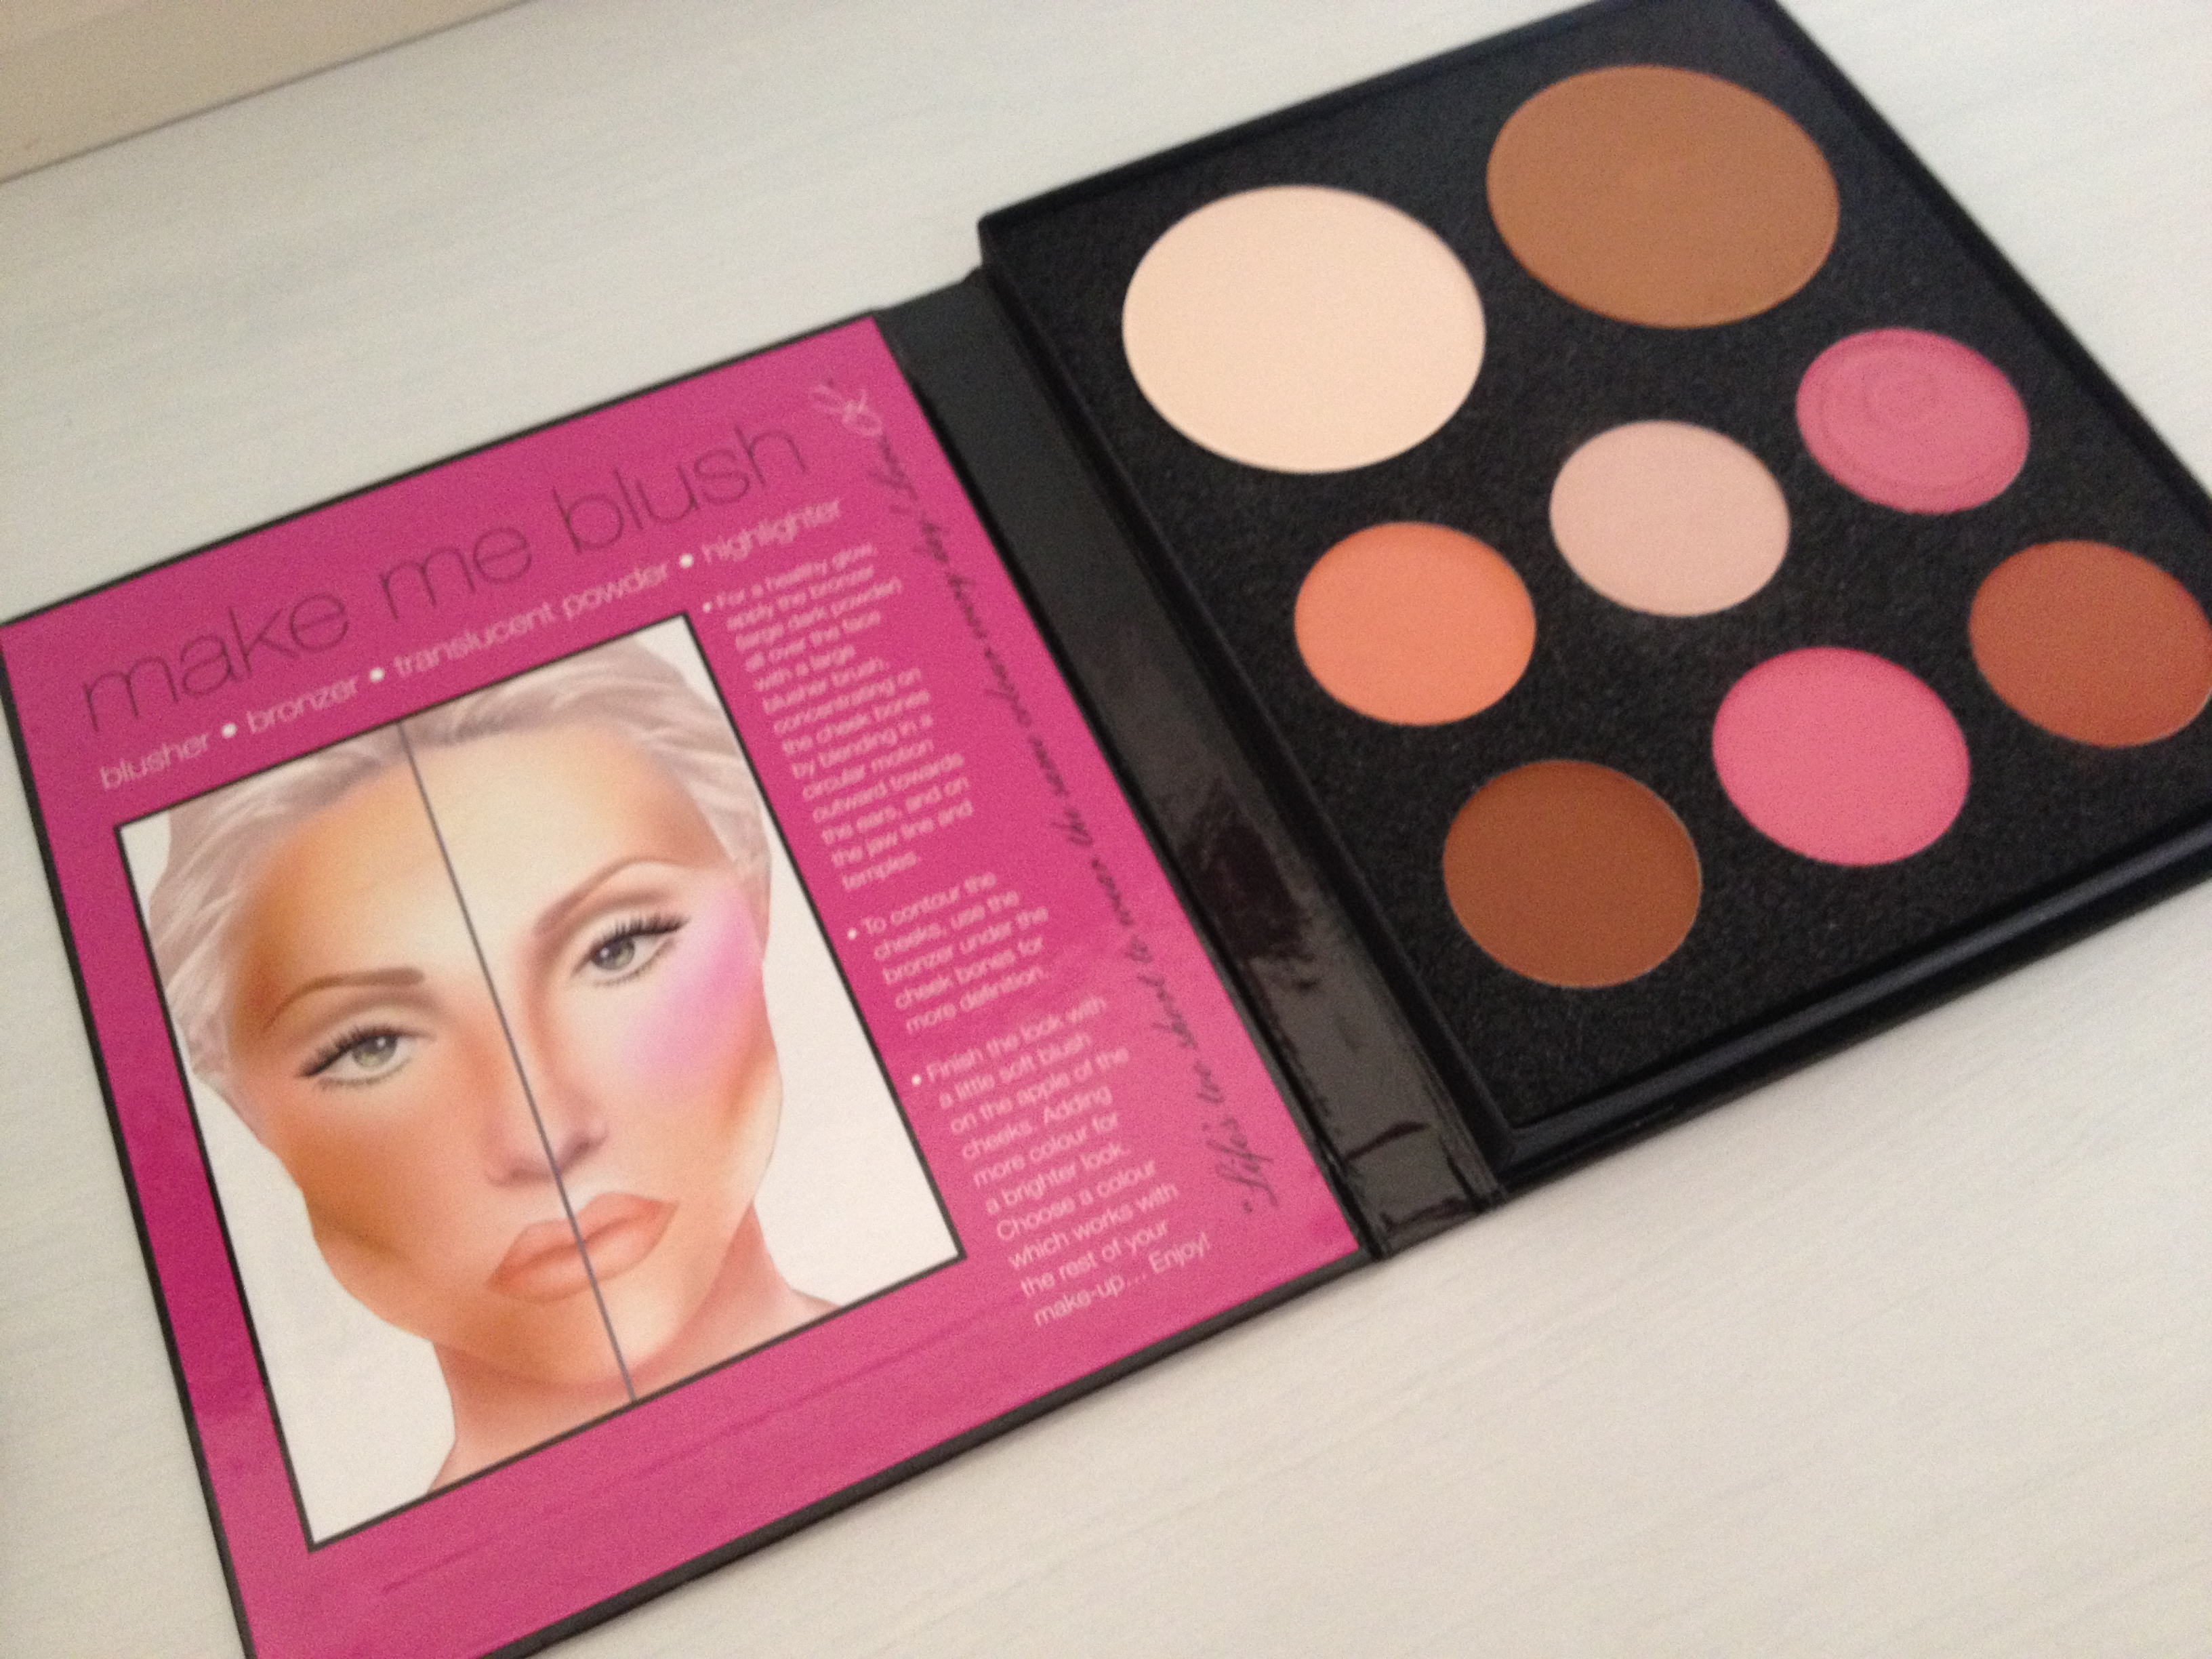 Carolyn_K_London_Make_Me_Blush_Beauty_Book (5)